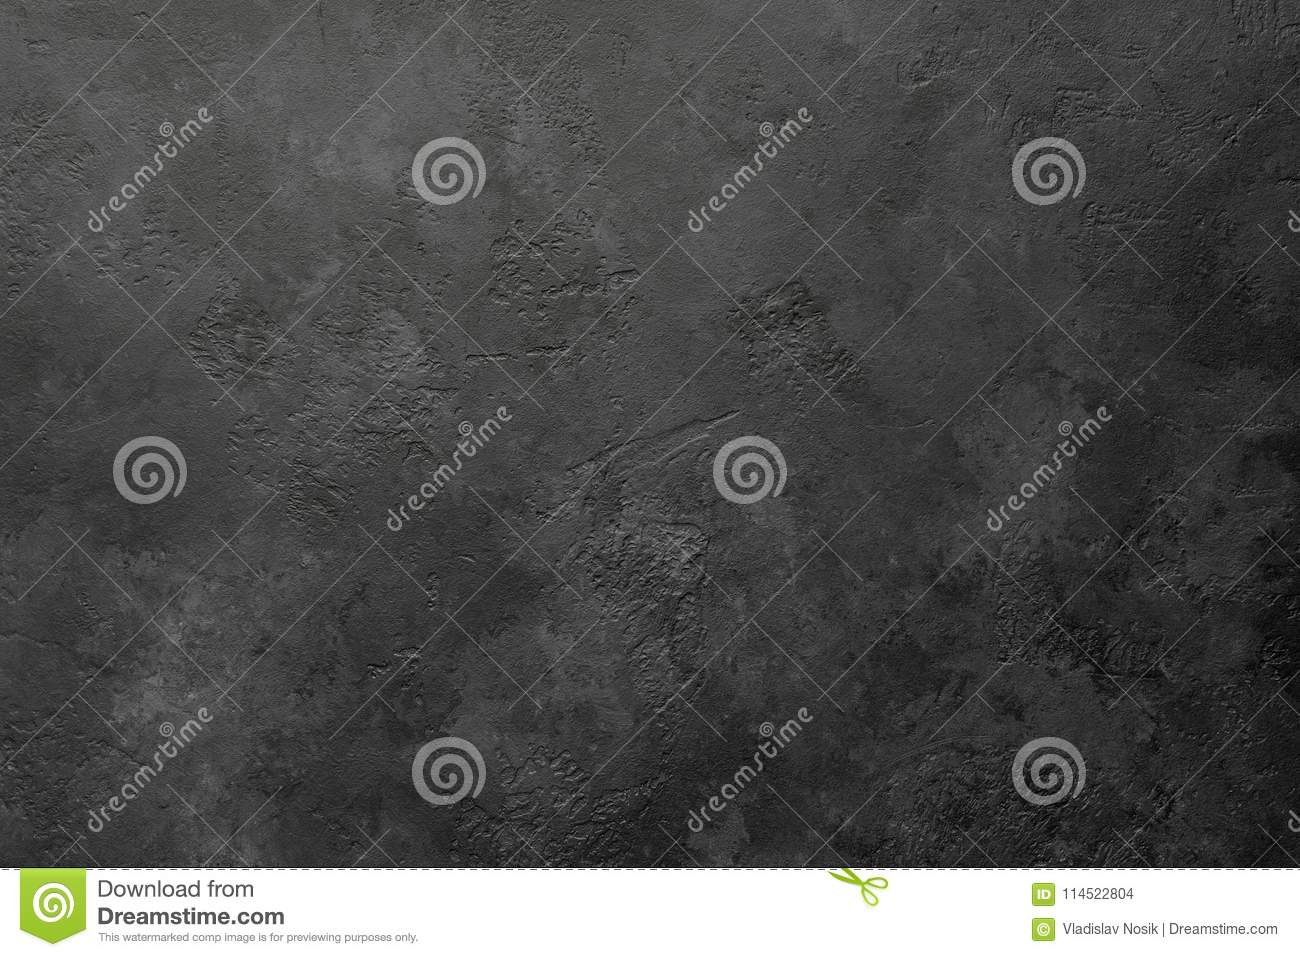 Black stone or slate background or texture